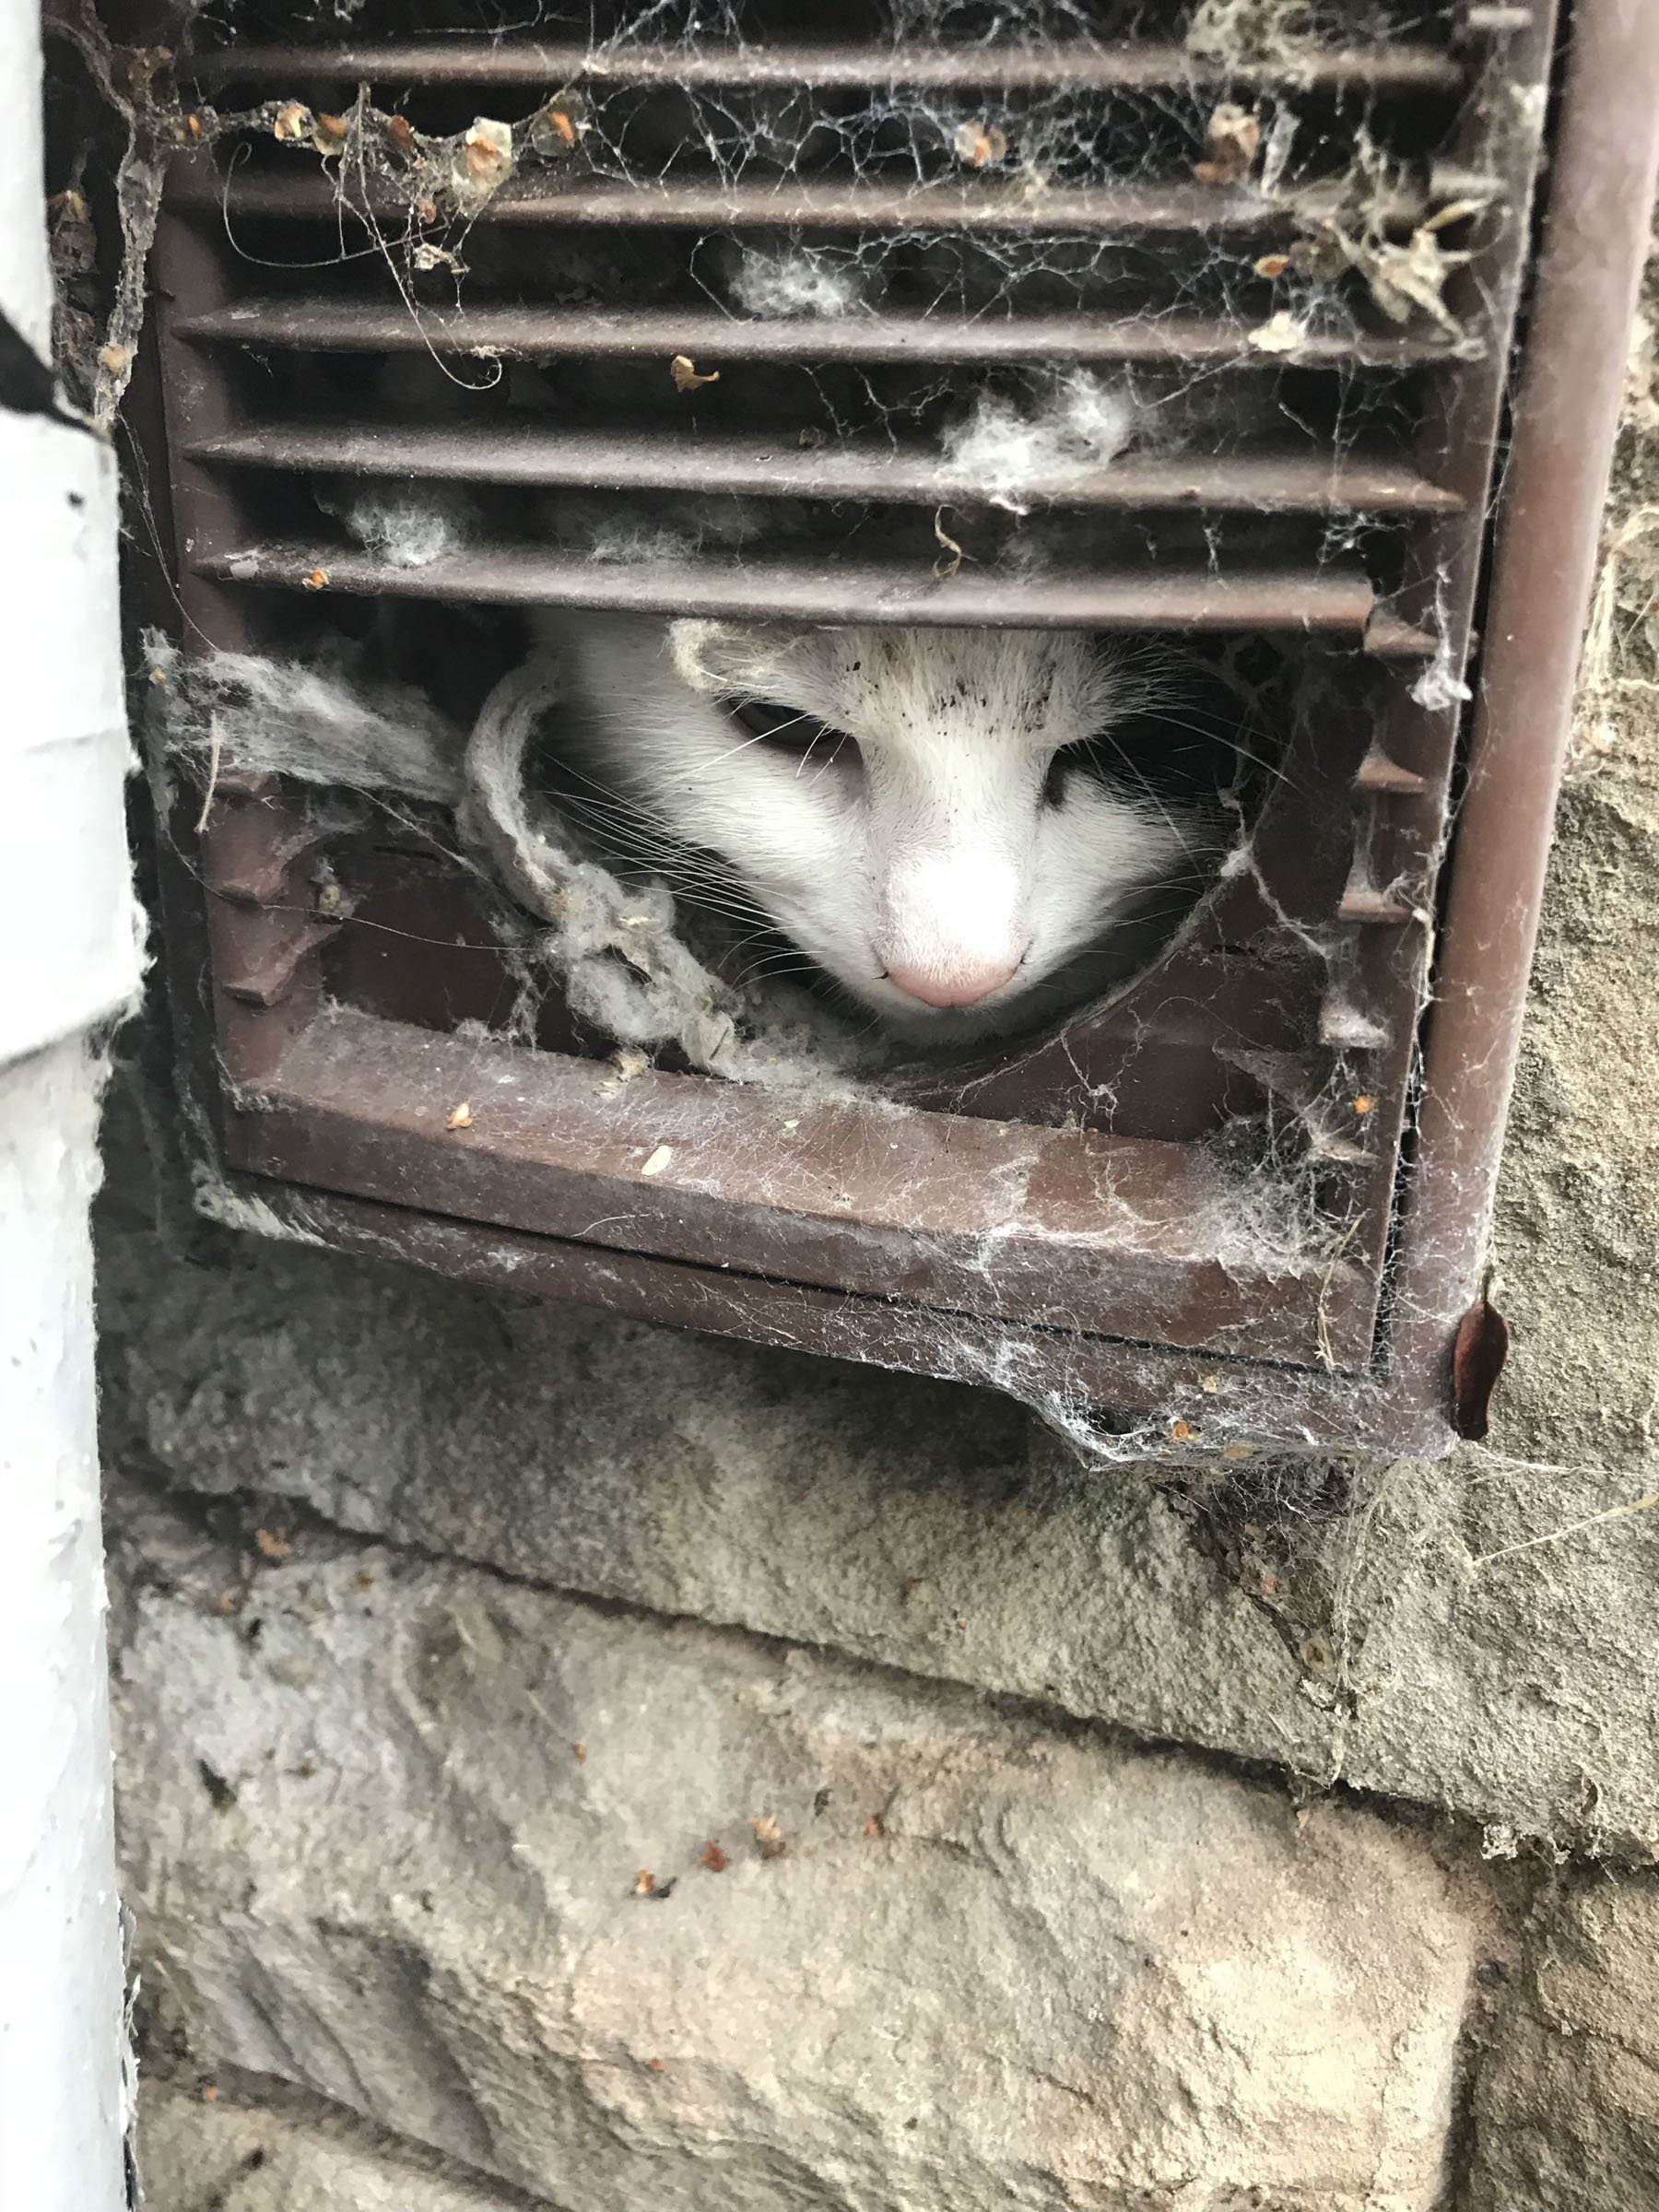 Cat Gets Stuck in Laundry Vent, Needs to Be Buttered Up to Get Out